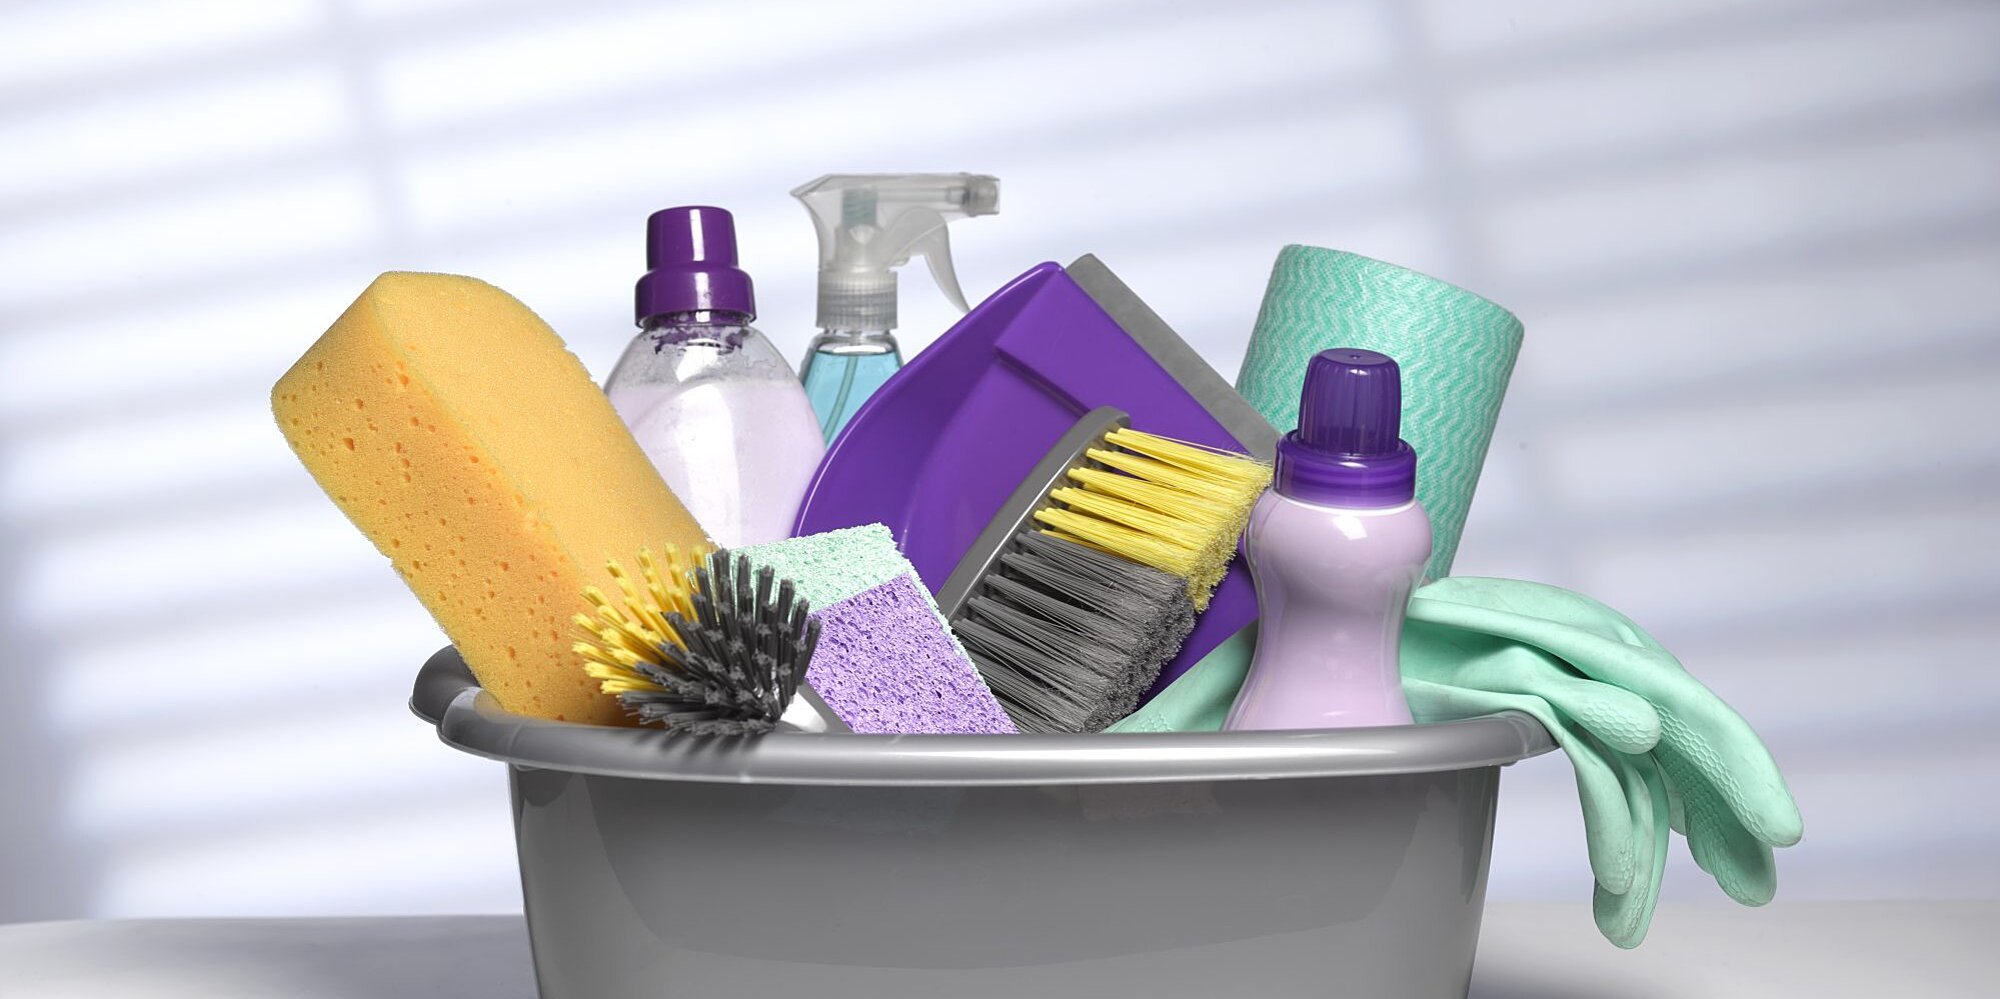 What's the Most Popular Cleaning Product Scent on the Market?